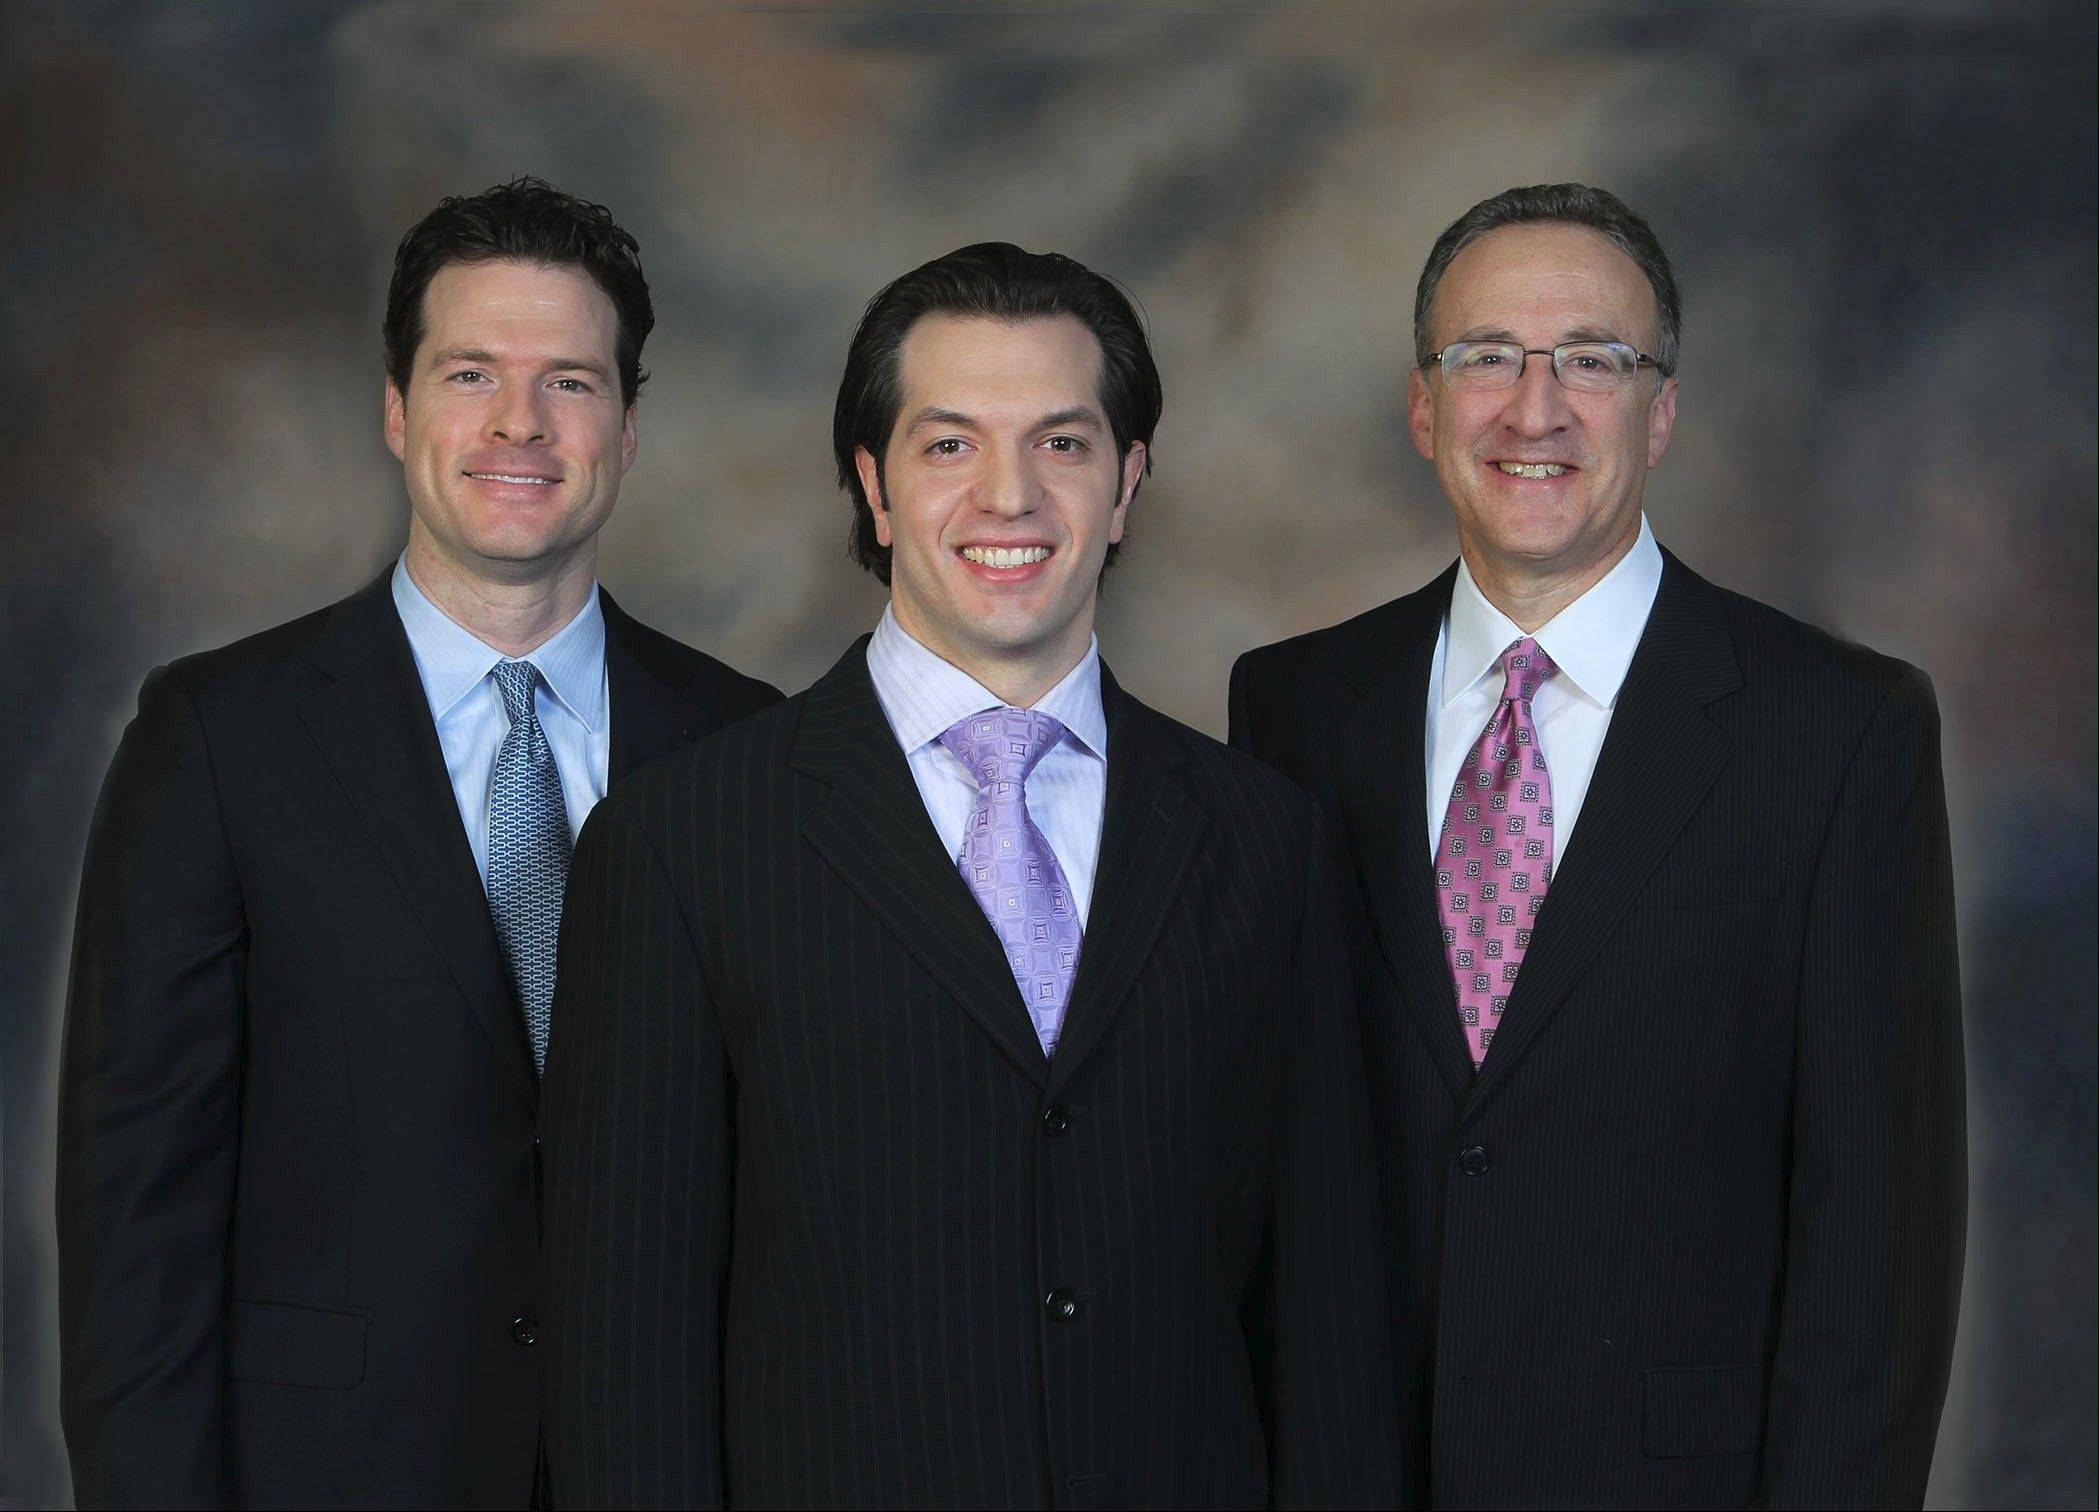 Interventional radiologists Ryan Hickey, from left, Elias Hohlastos and Andrew Blum, all of the Northwestern Medical Faculty Foundation.